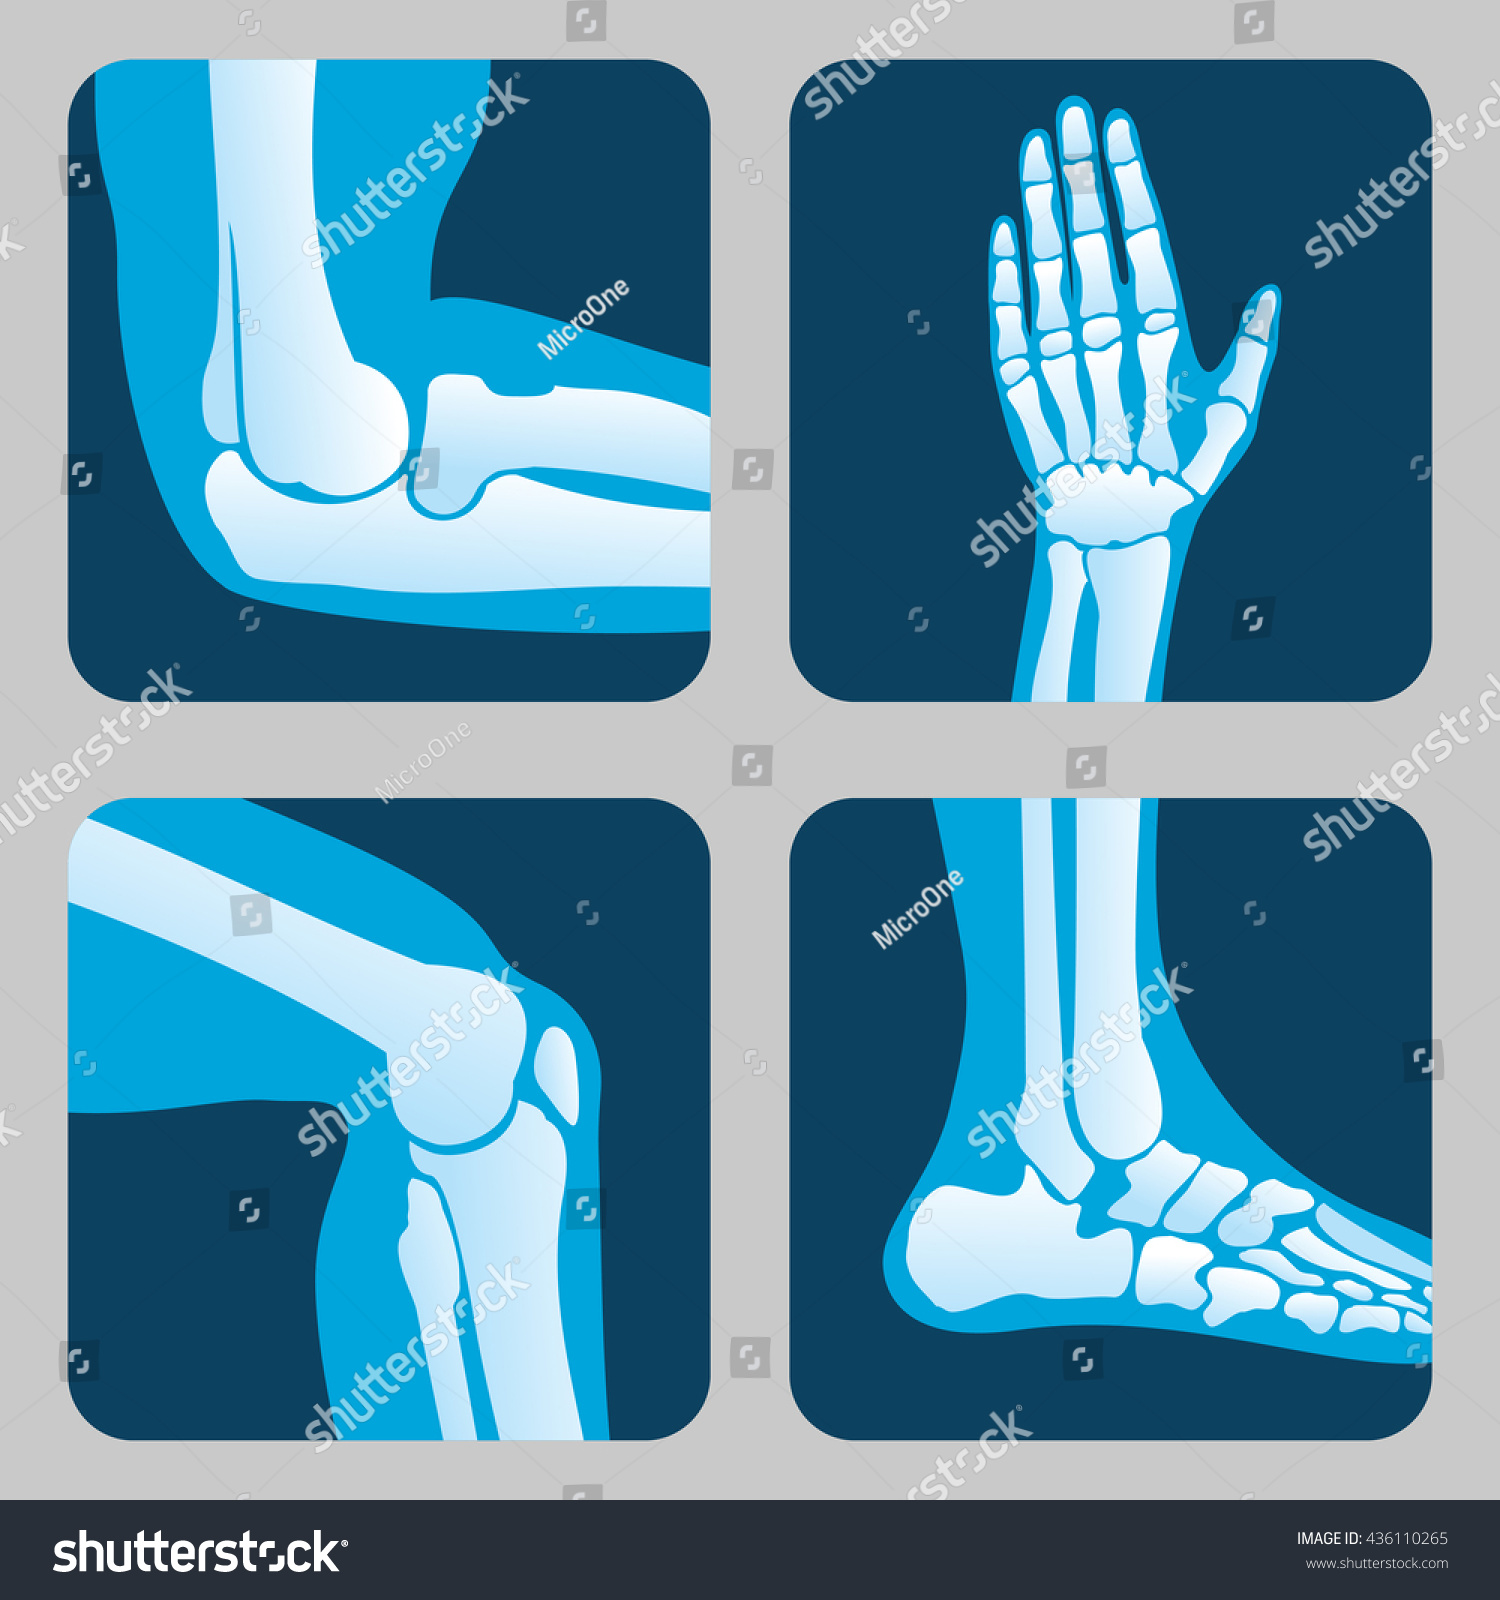 Human Joints Knee Elbow Joint Ankle Stock Vector (Royalty Free ...